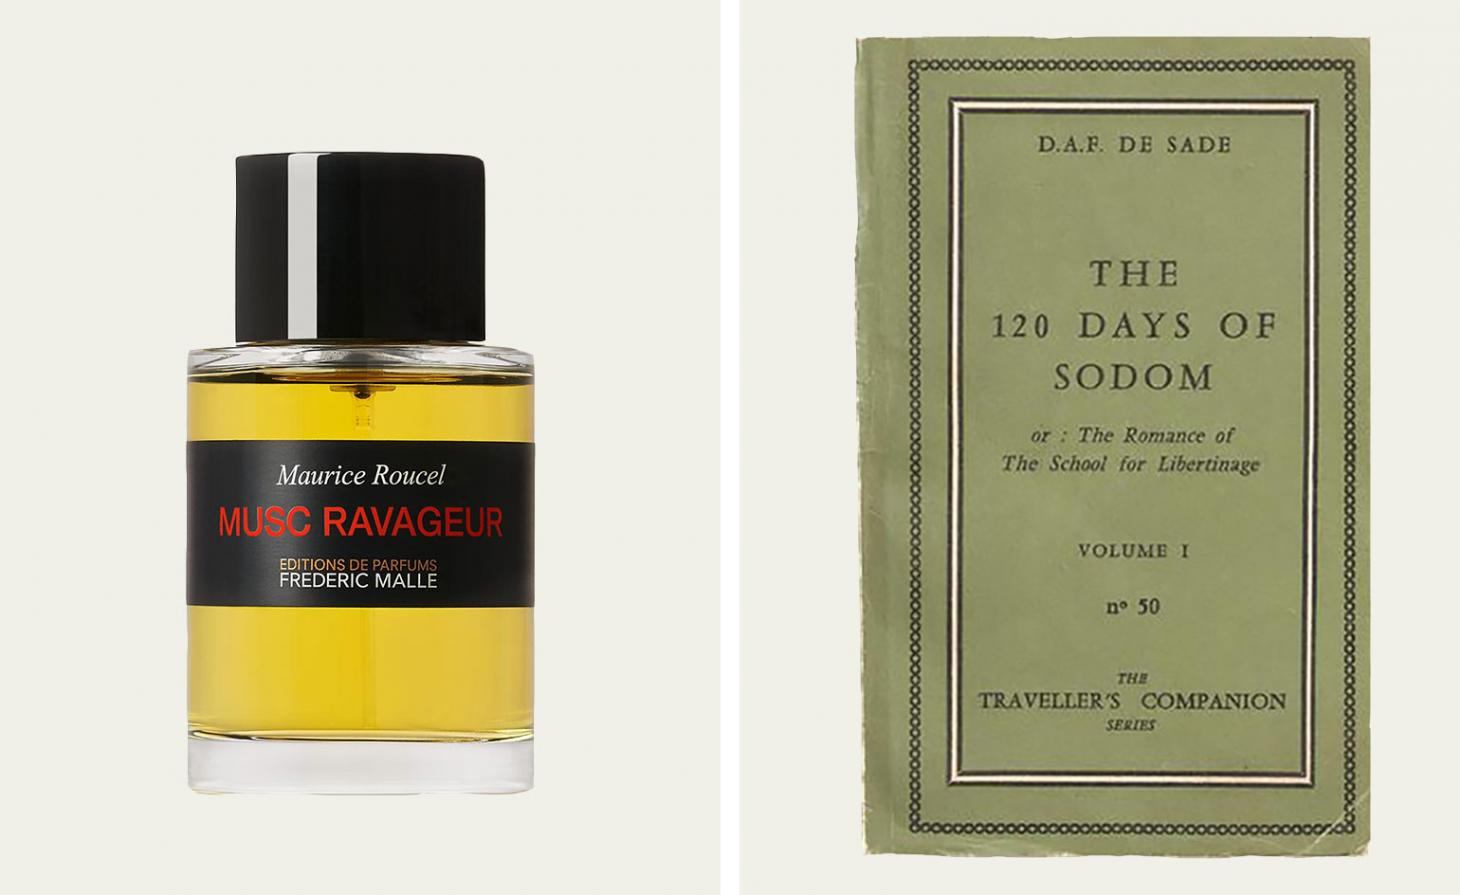 Frederic Malle Musc Ravageur perfumer in glass bottle with black label, next to old edition of Marquis de Sade book with green cover